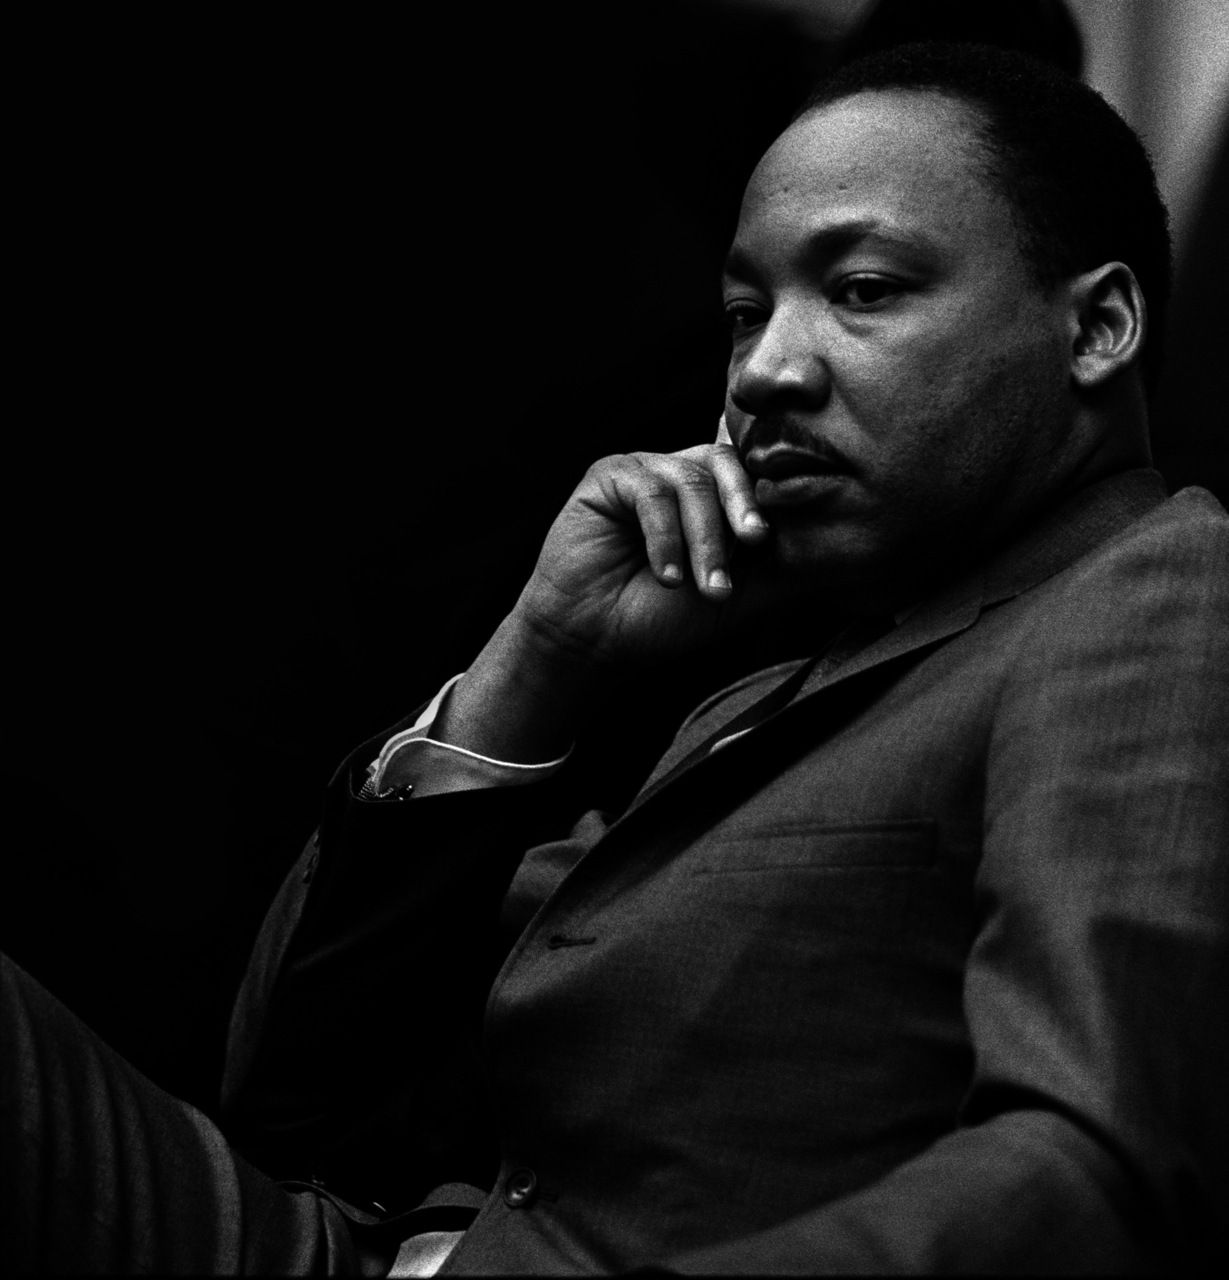 Dr Martin Luther King Jr Fascinating People Pinterest